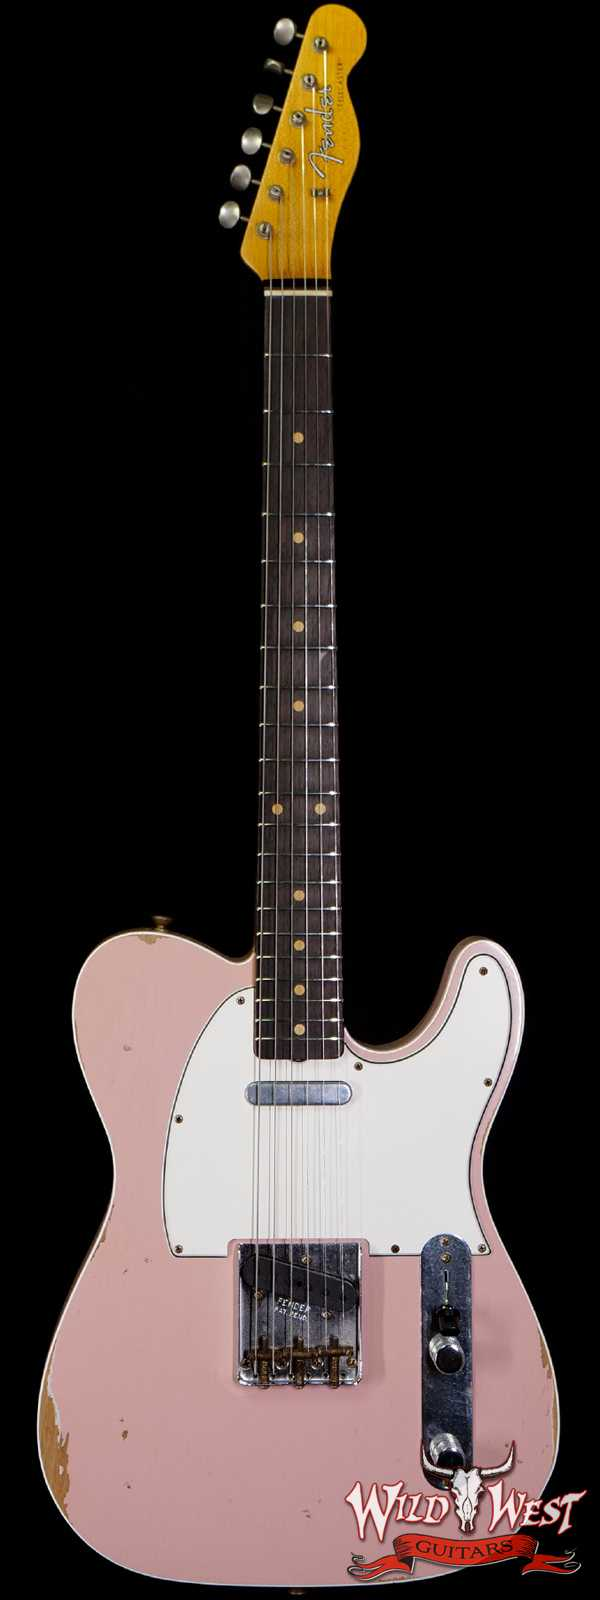 Fender Custom Shop 1960 Telecaster Custom Relic Quater-Sawn Maple AAA Rosewood Fingerboard Shell Pink